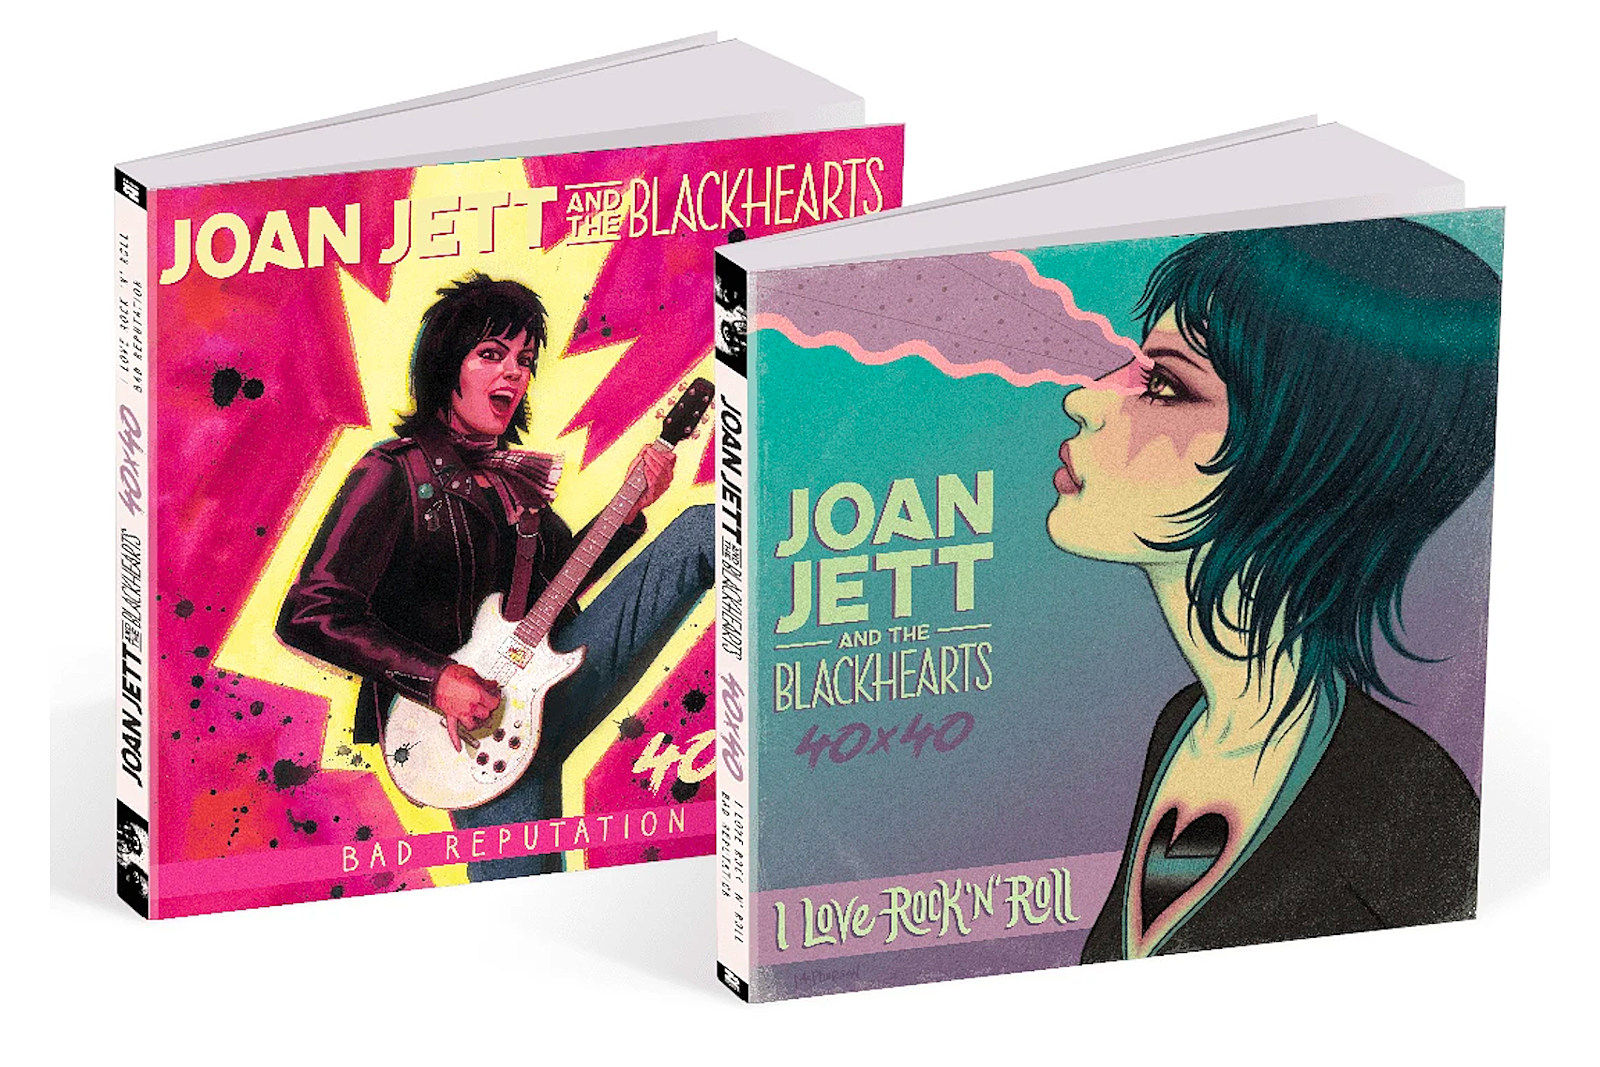 Joan Jett's First Two Albums Turned Into a Graphic Novel